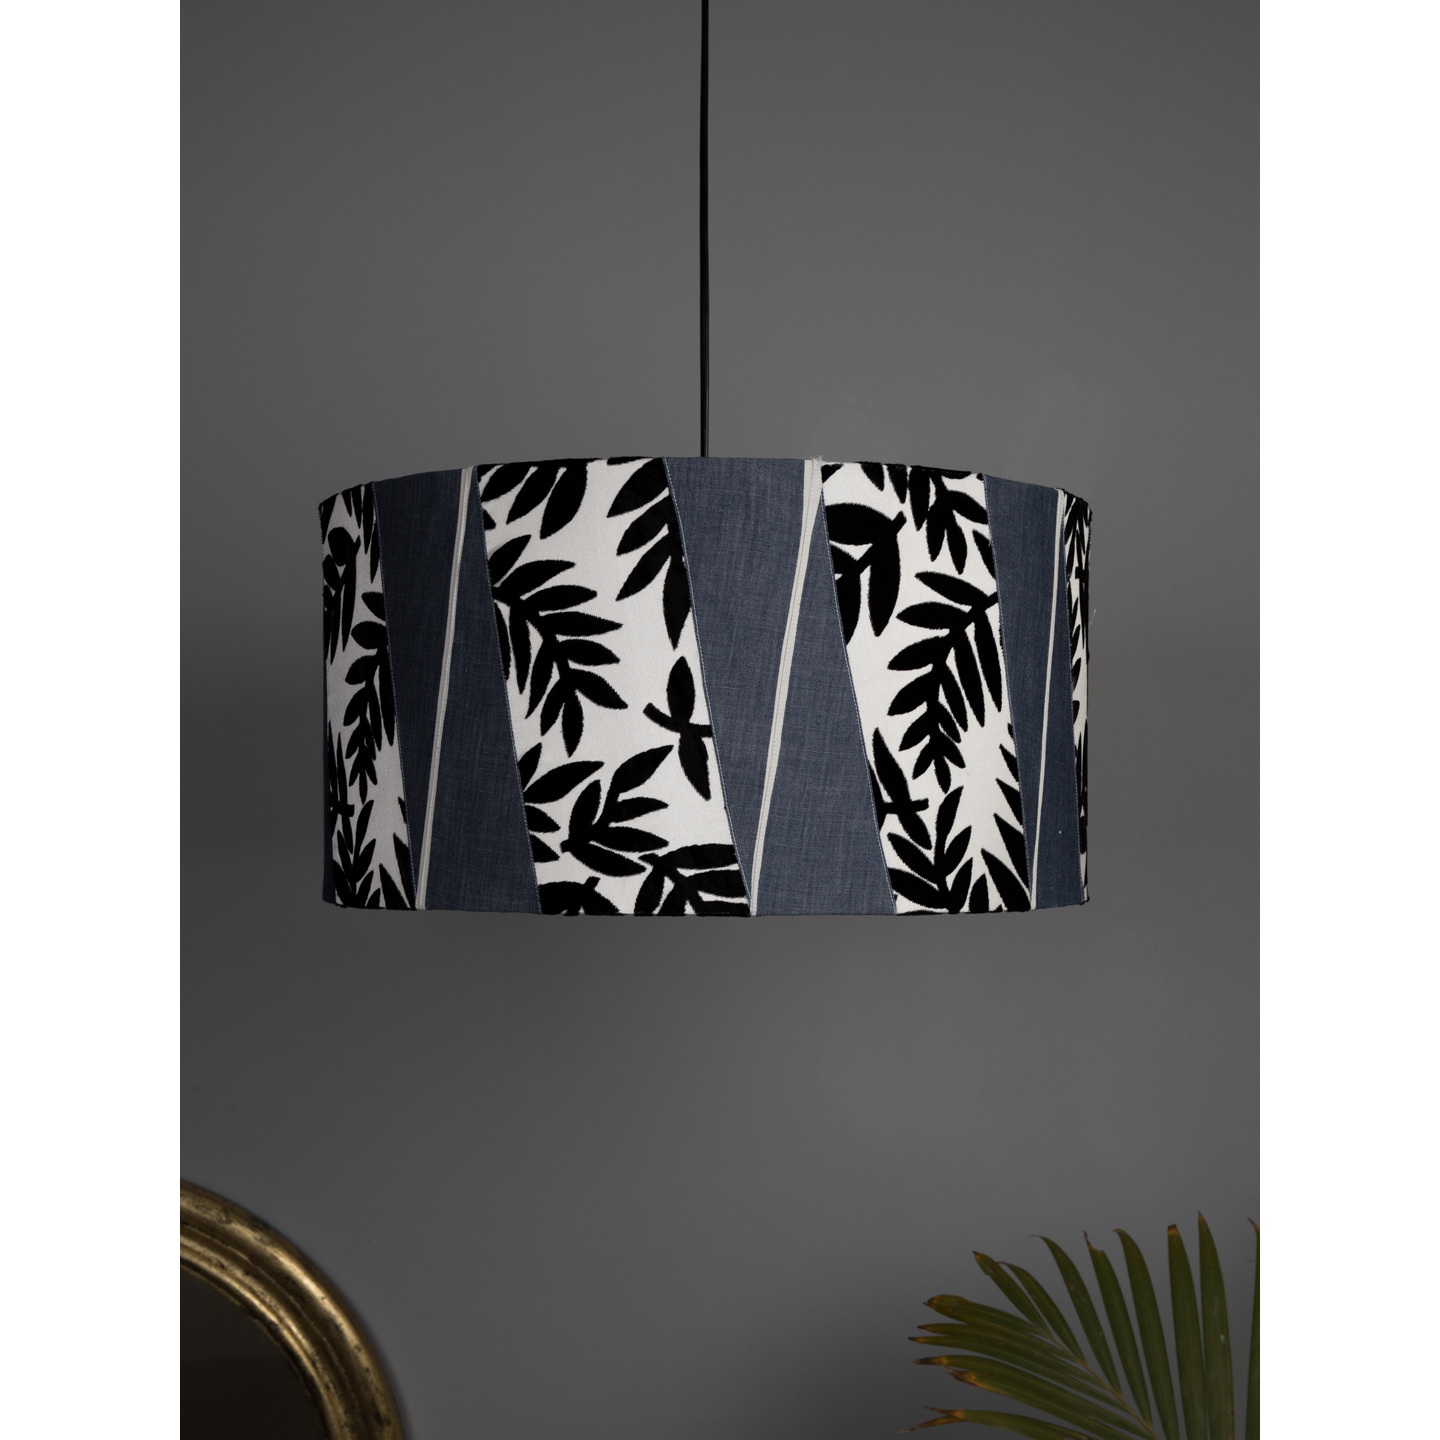 Buy Online 1 Pc Hanging Lamp Set Attached With A Bulb Holder Adjustable Cordmulticolor